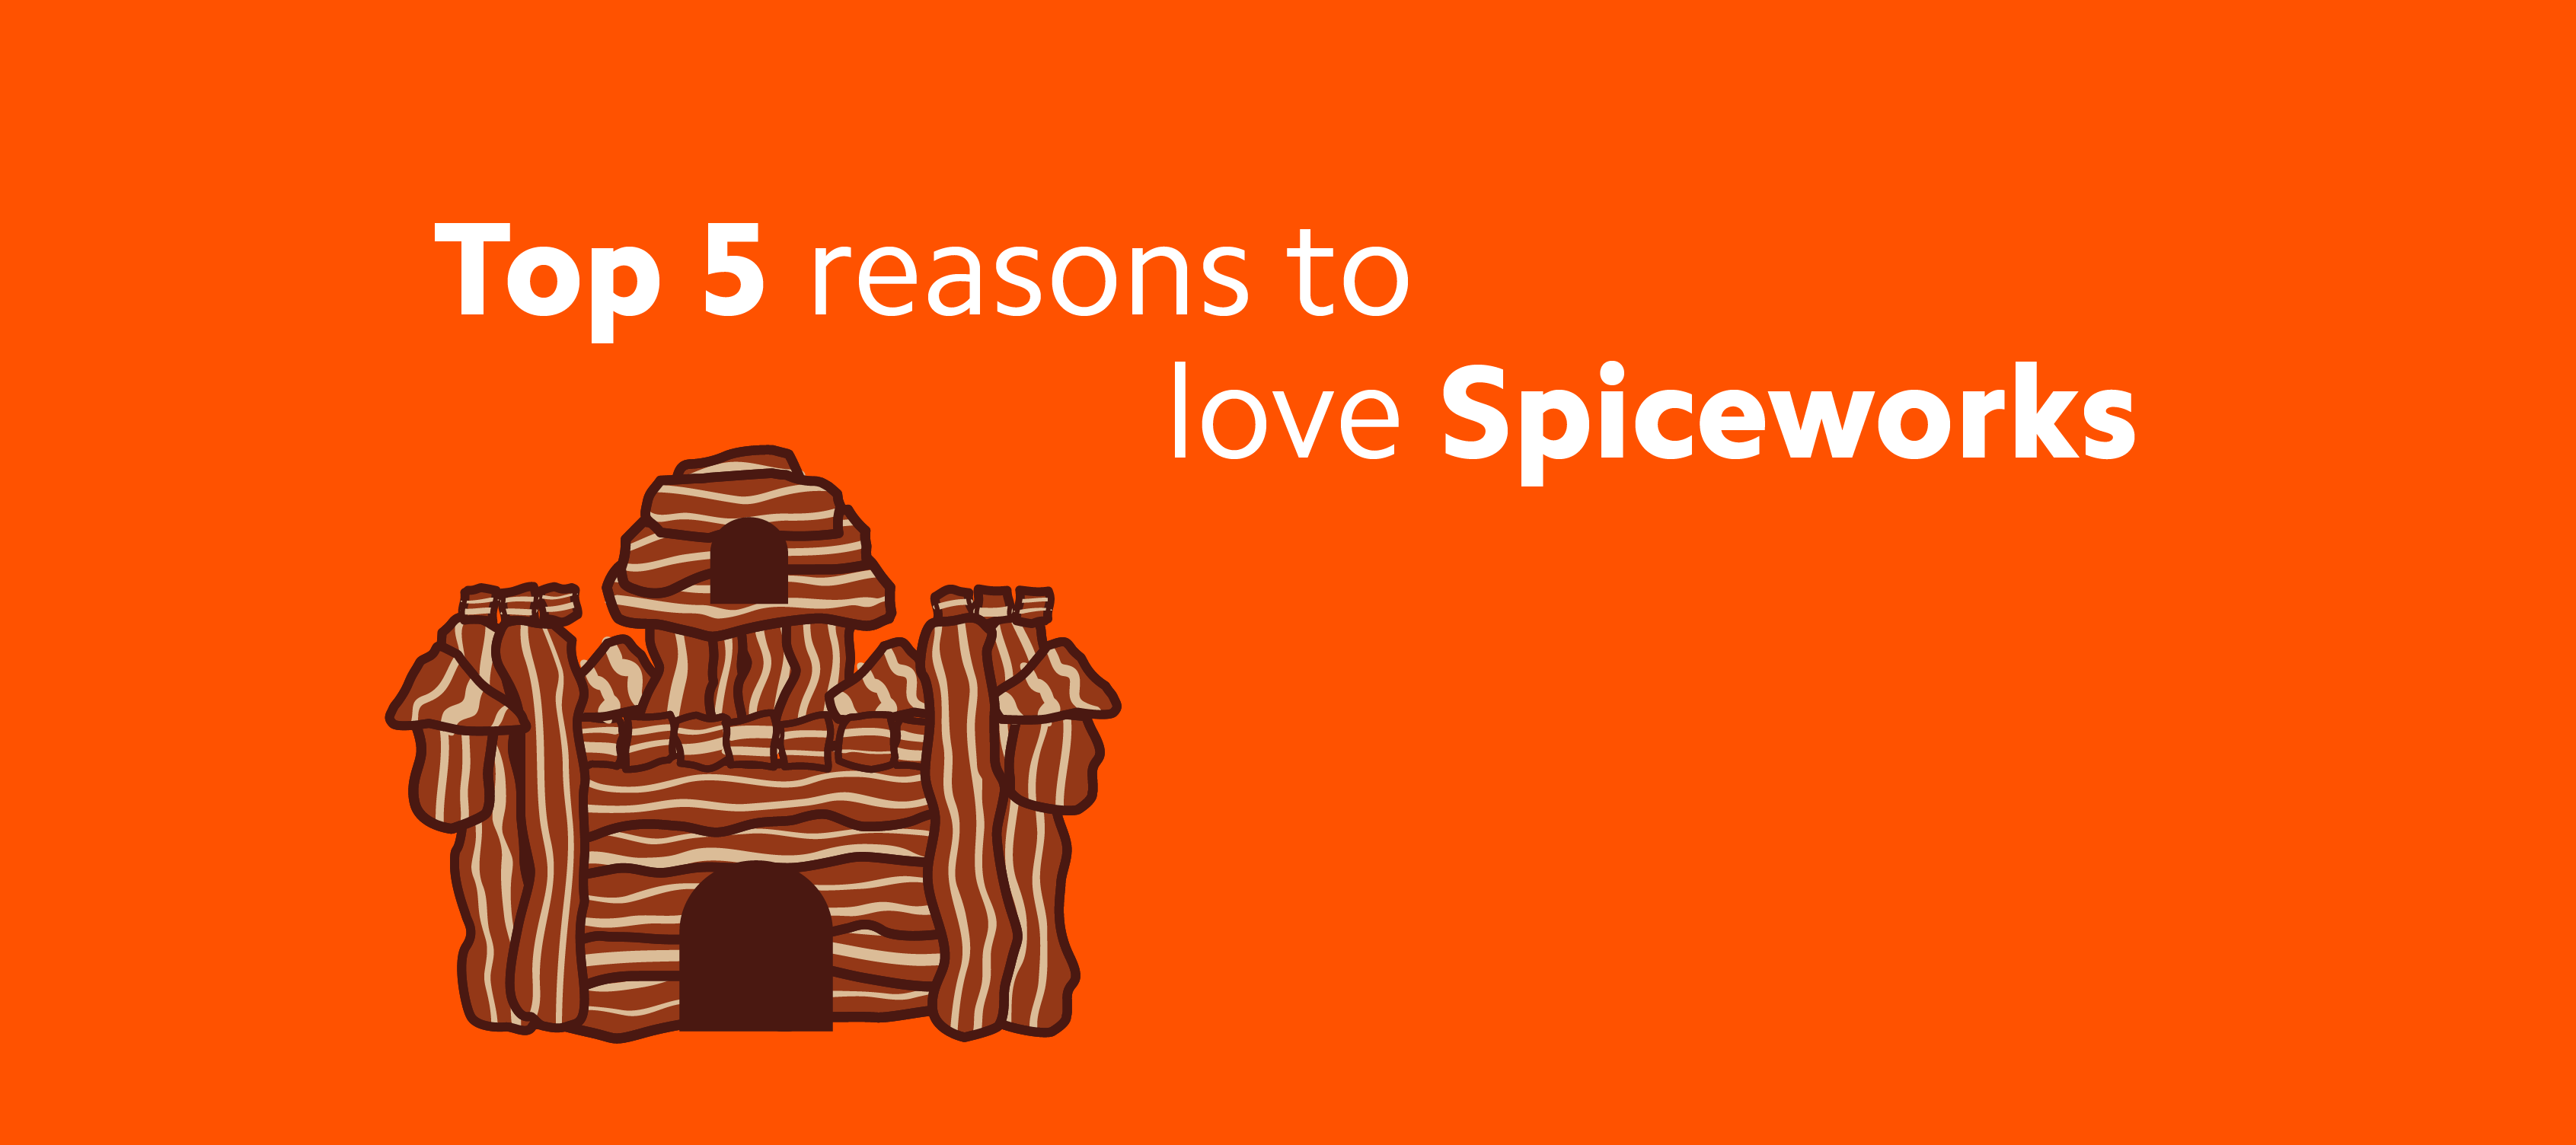 Top 5 reasons to love Spiceworks